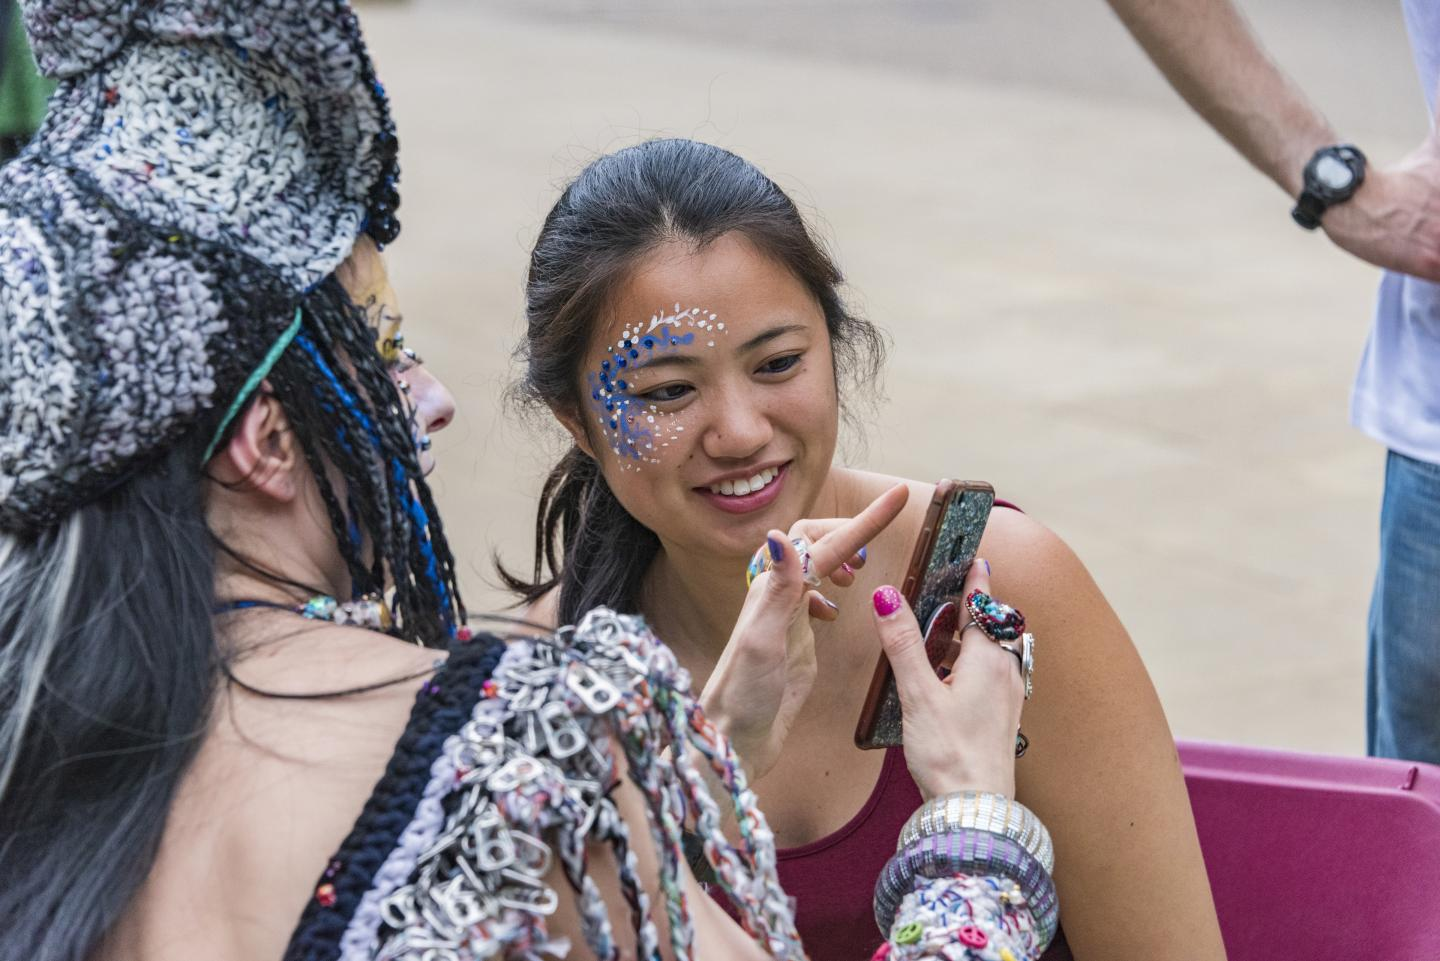 A young person with their face painted looks at an image of their face